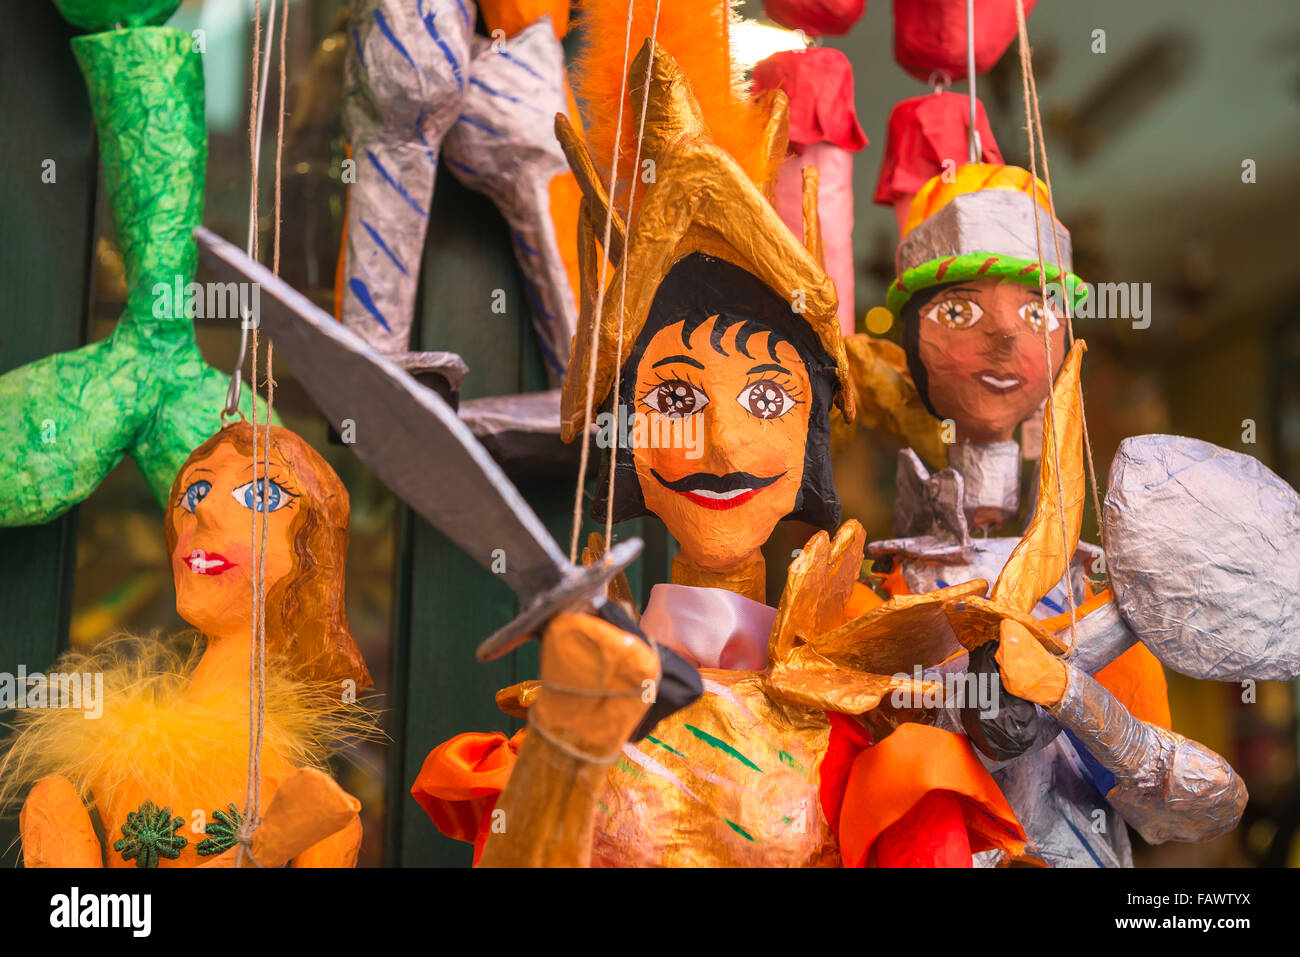 Puppets, view of colorful traditional papier mache puppets for sale on the Corso Umberto l in Taormina, Sicily. - Stock Image